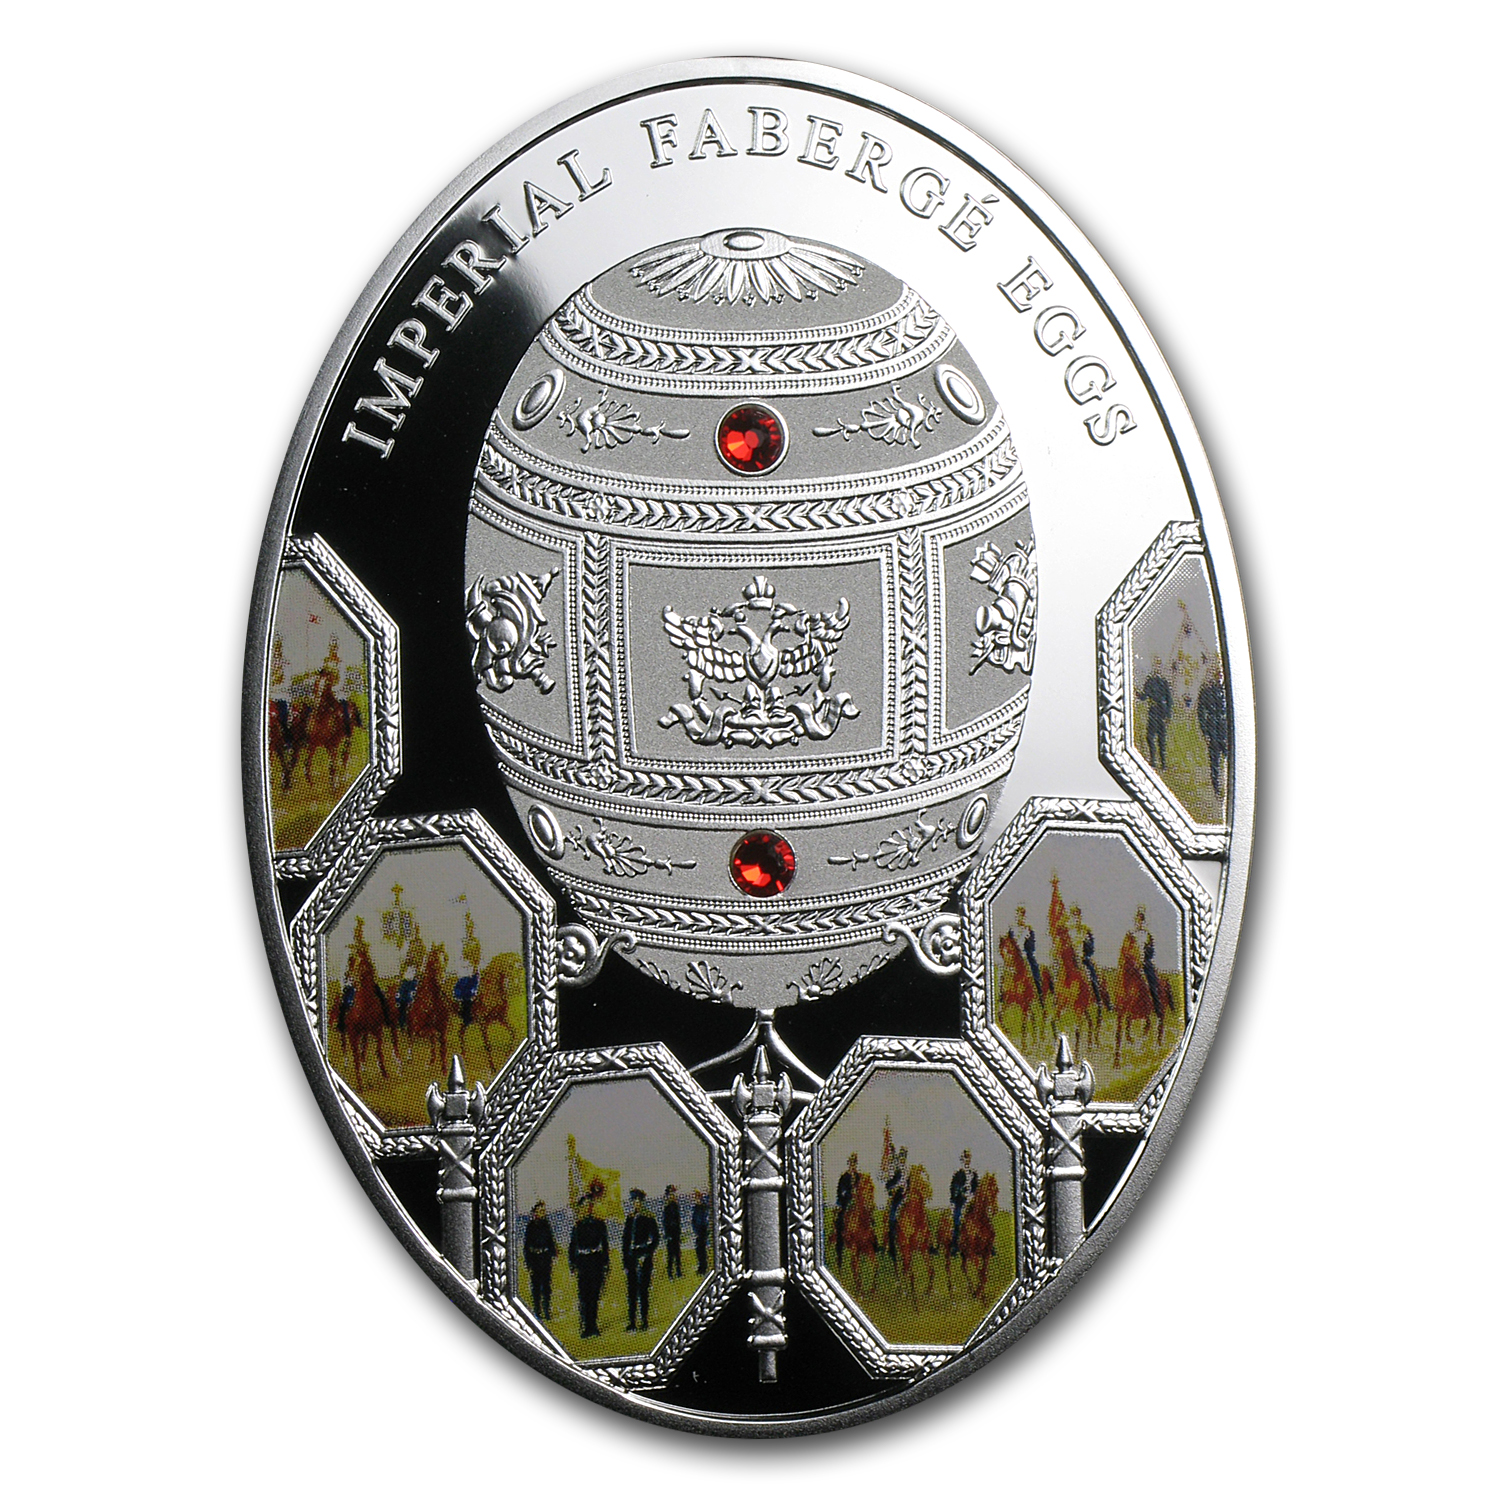 2012 Niue Silver Imperial Faberge Eggs 100th Anniv War of 1812